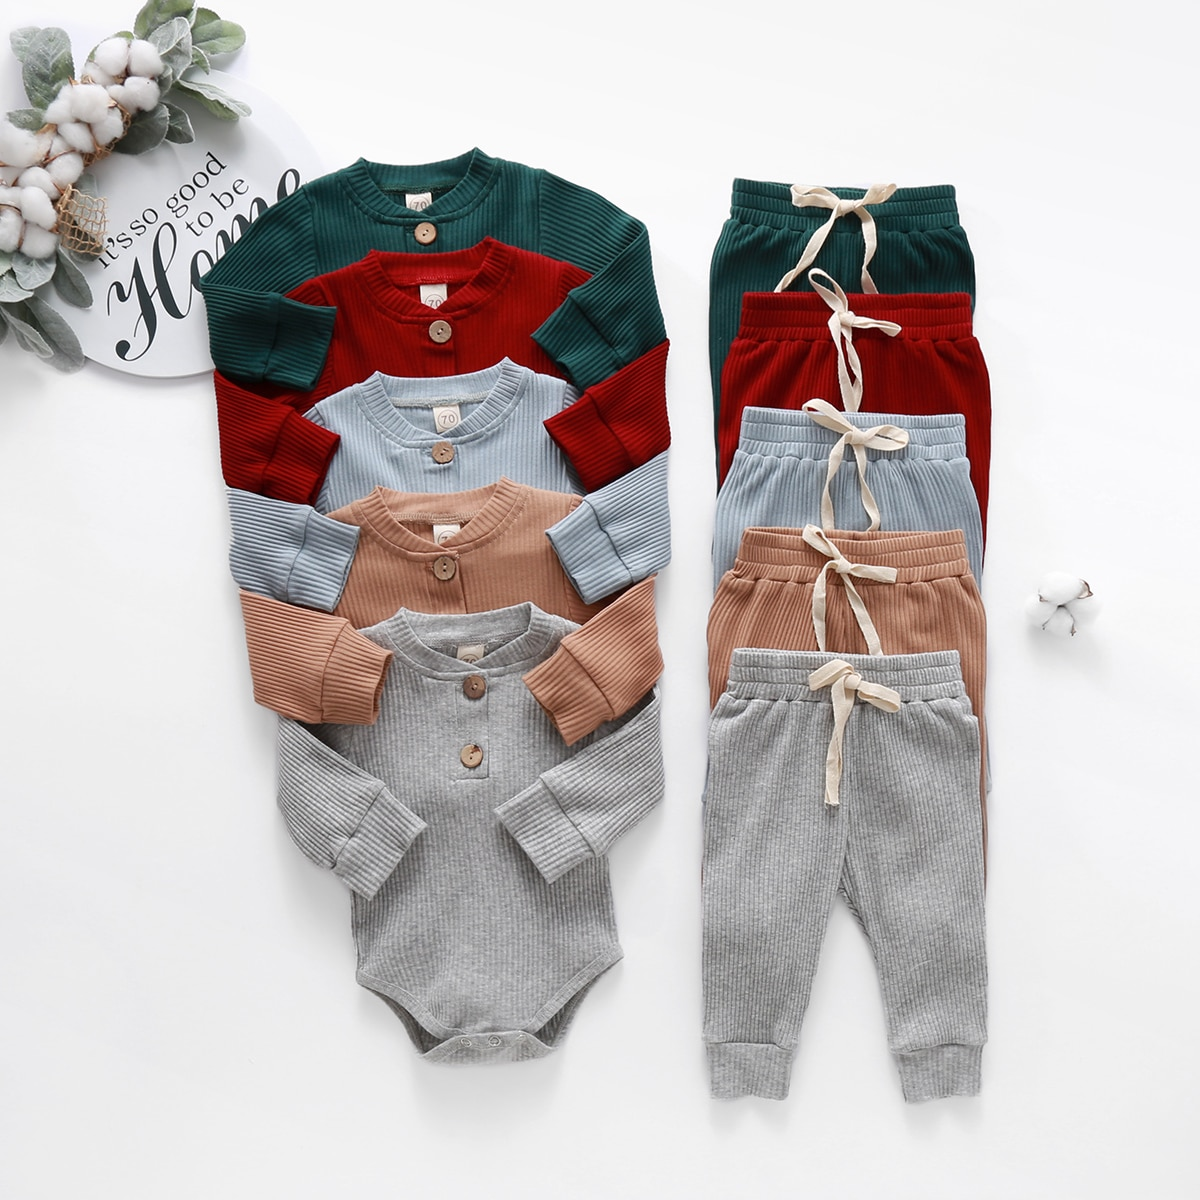 Baby Solid Clothes Long Sleeve Romper and Pants Set - 1MRK.COM